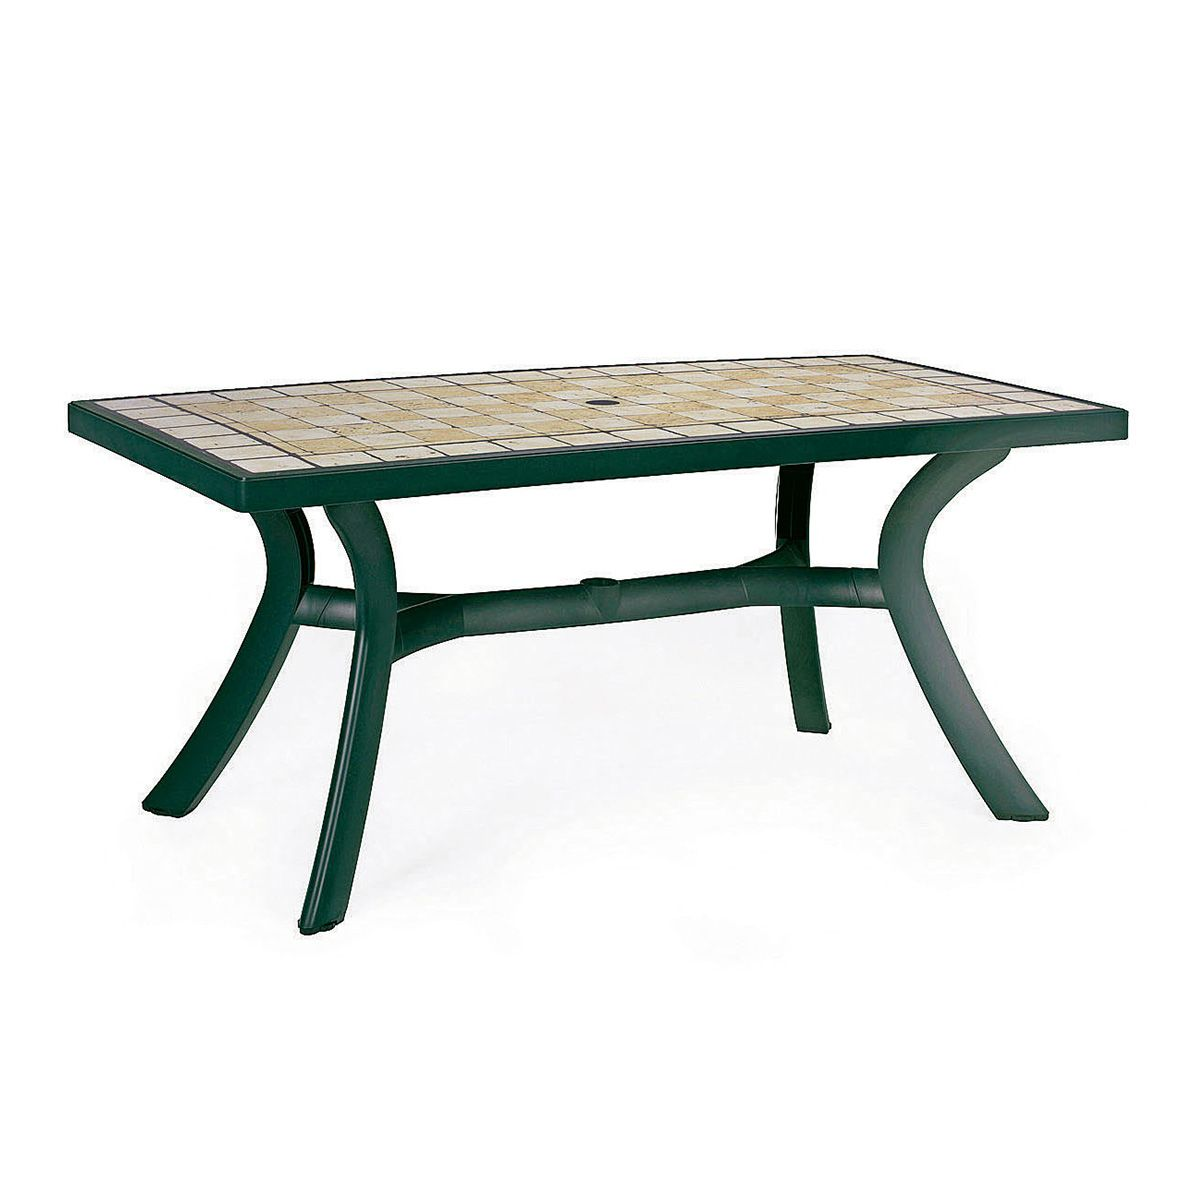 Table jardin plastique nardi toscana 160 zendart design for Meuble de jardin nardi